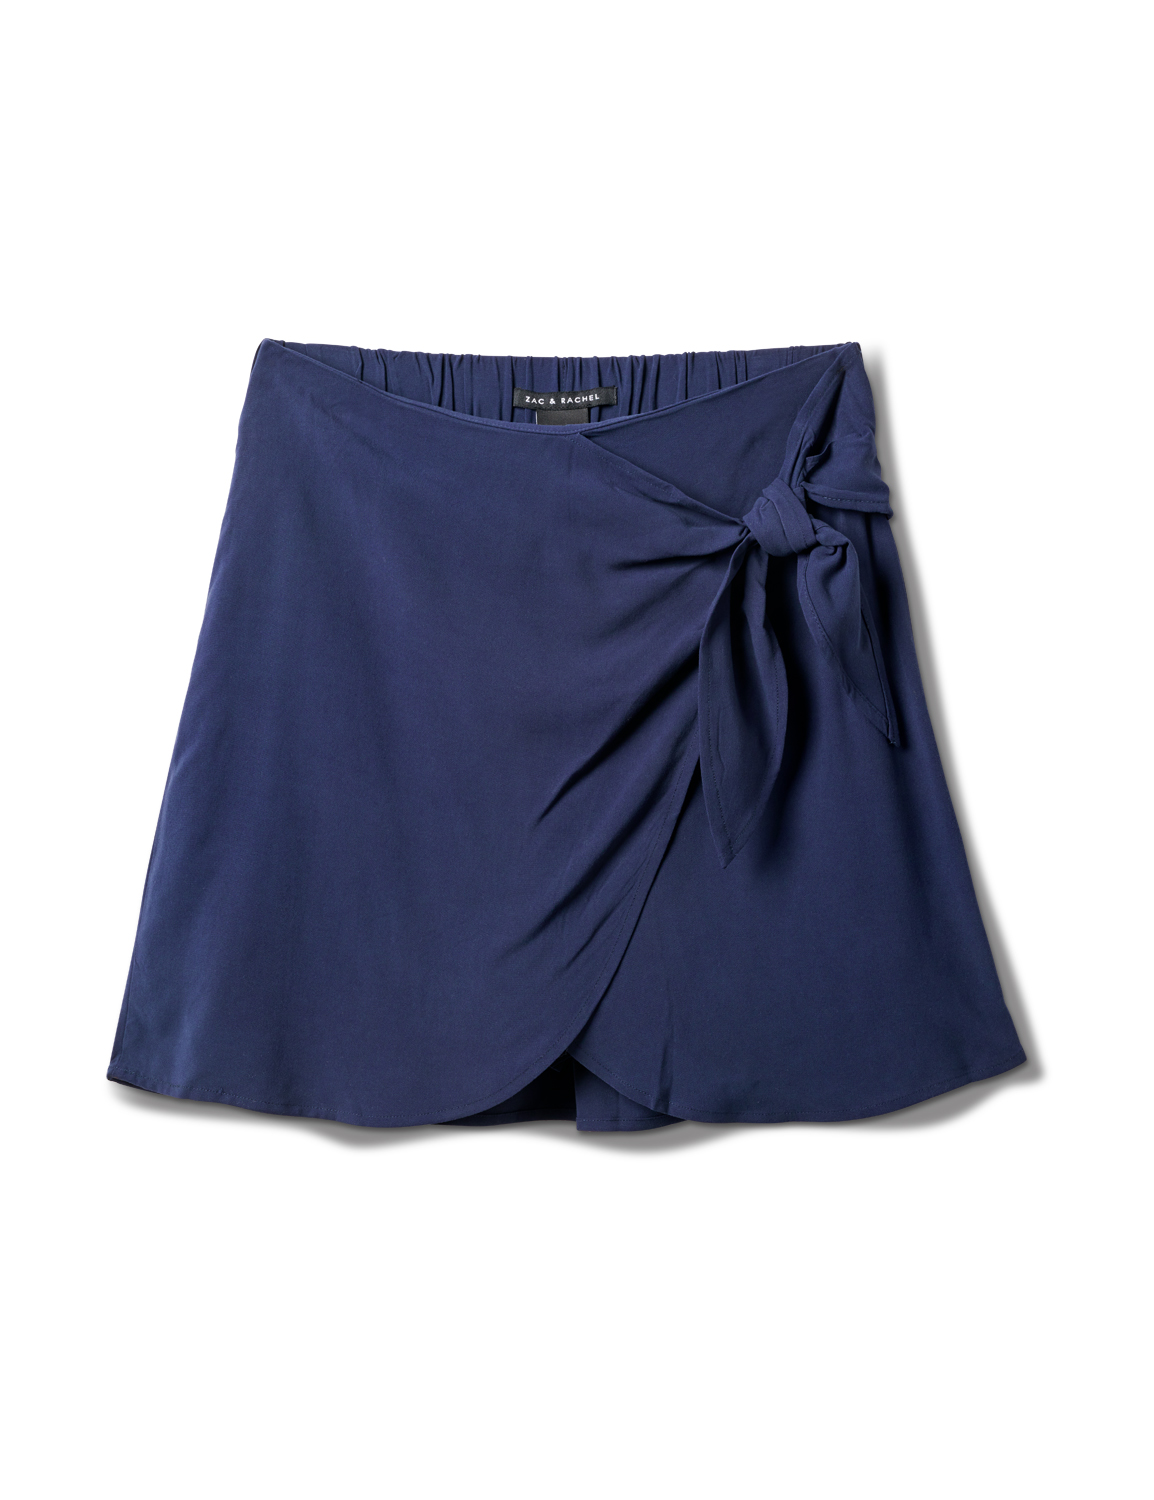 Pull On Skort with Back Elastic -Navy - Front